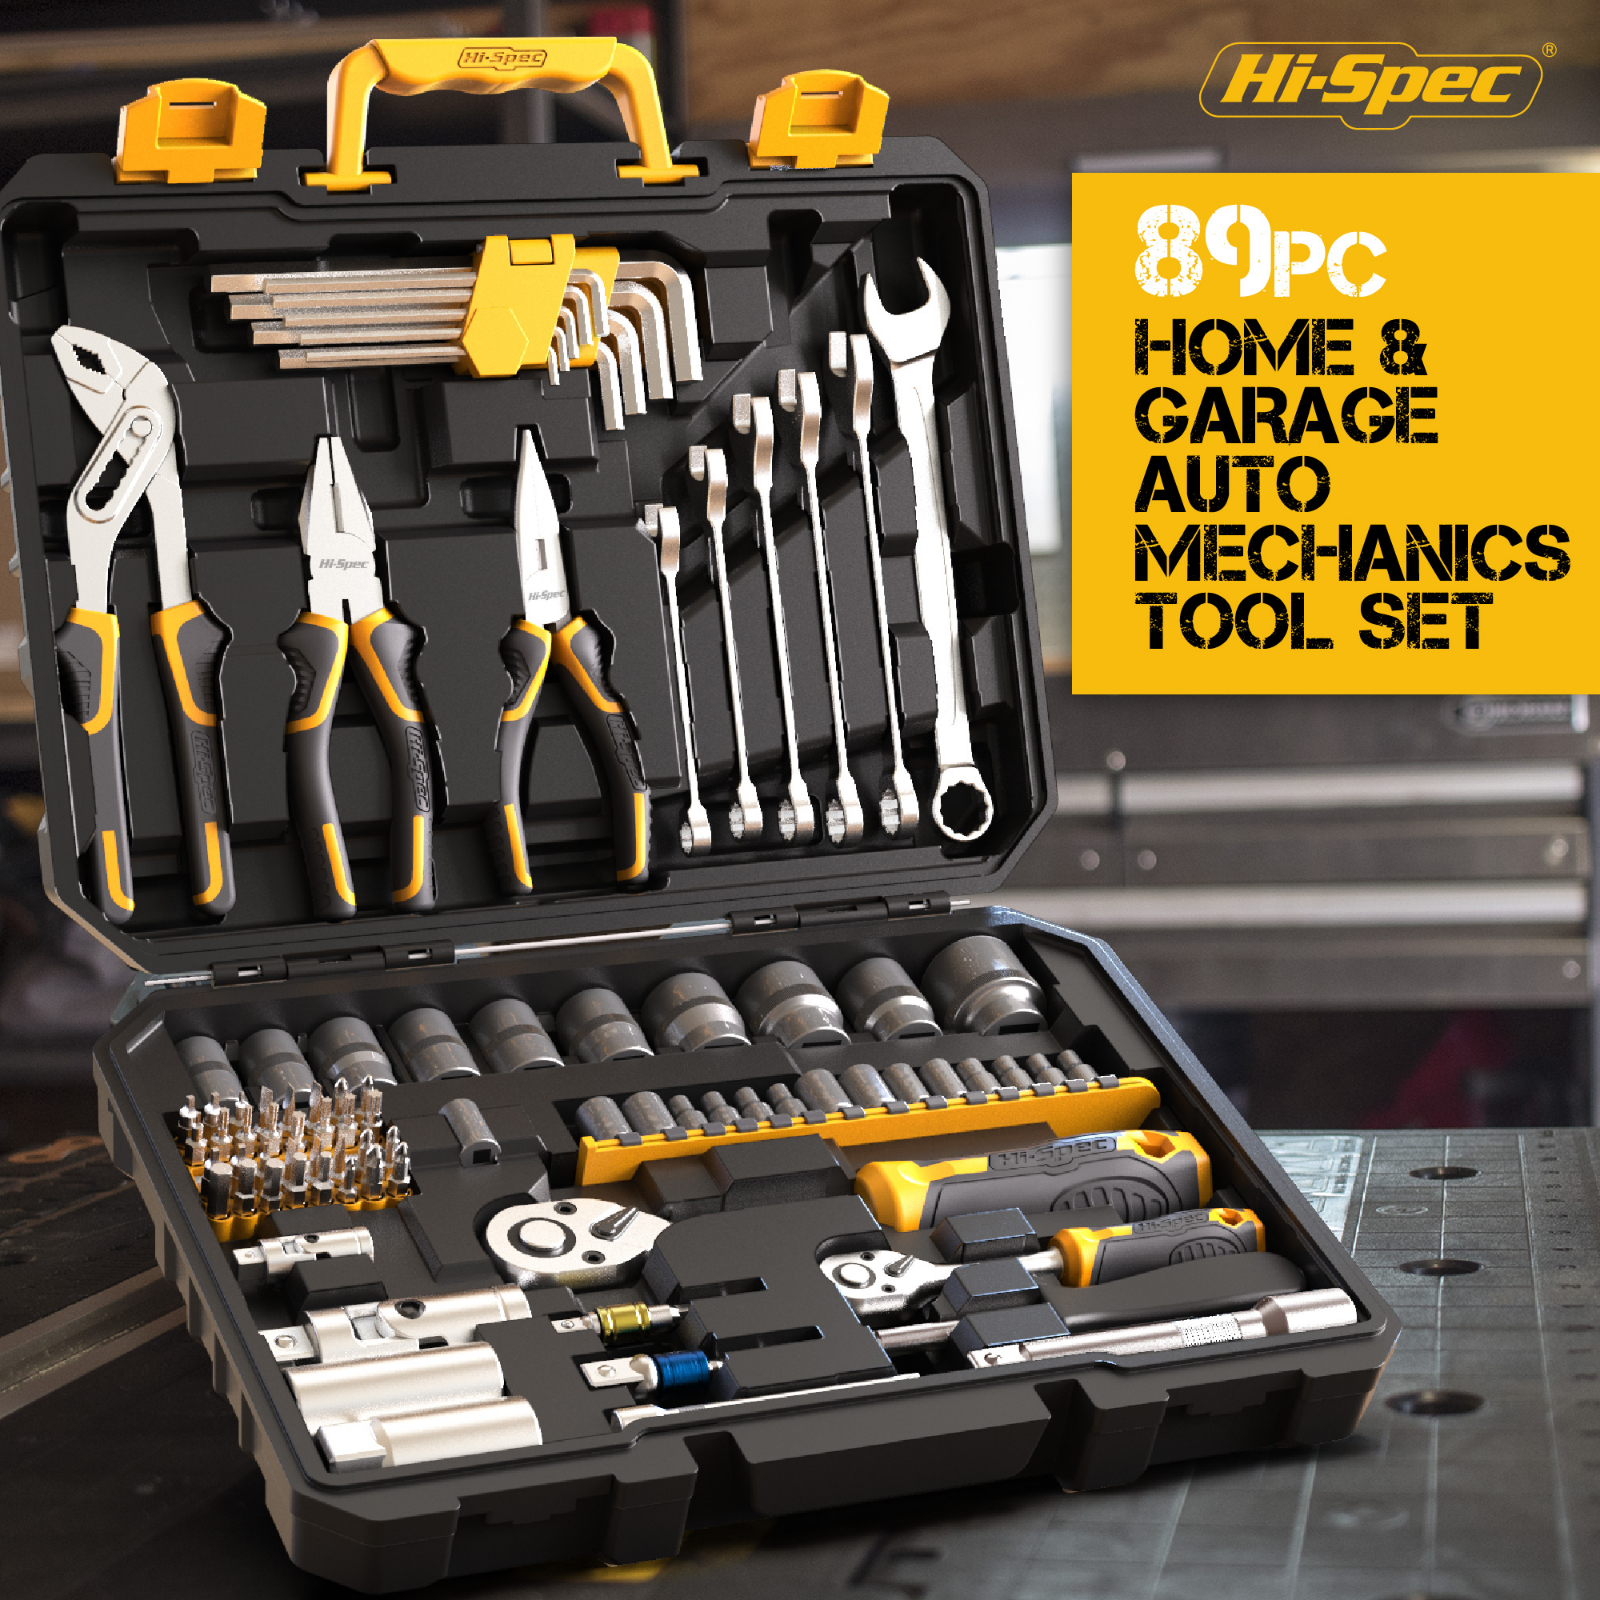 Hi-Spec 89pc Mechanic s Hand Tool Kit Set of Tools for Auto 1 2 1 4 Professional Socket Wrench Combination Tool Set with Toolbox